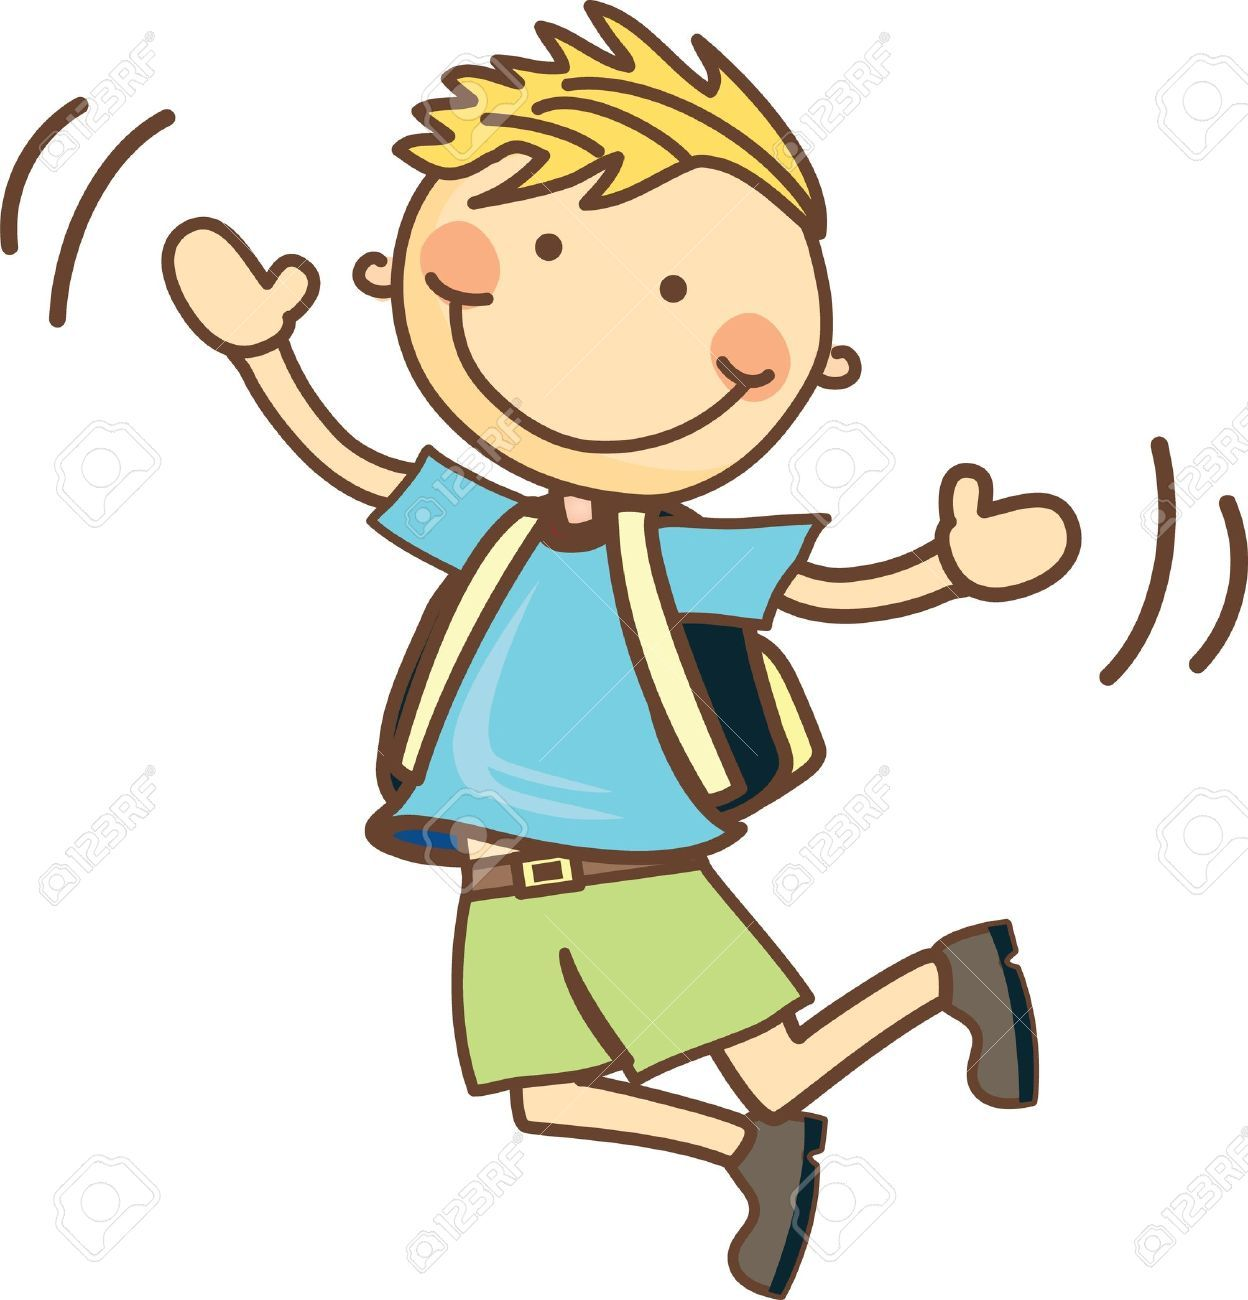 A boy jumping clipart png freeuse library Boy jumping clipart 7 » Clipart Portal png freeuse library